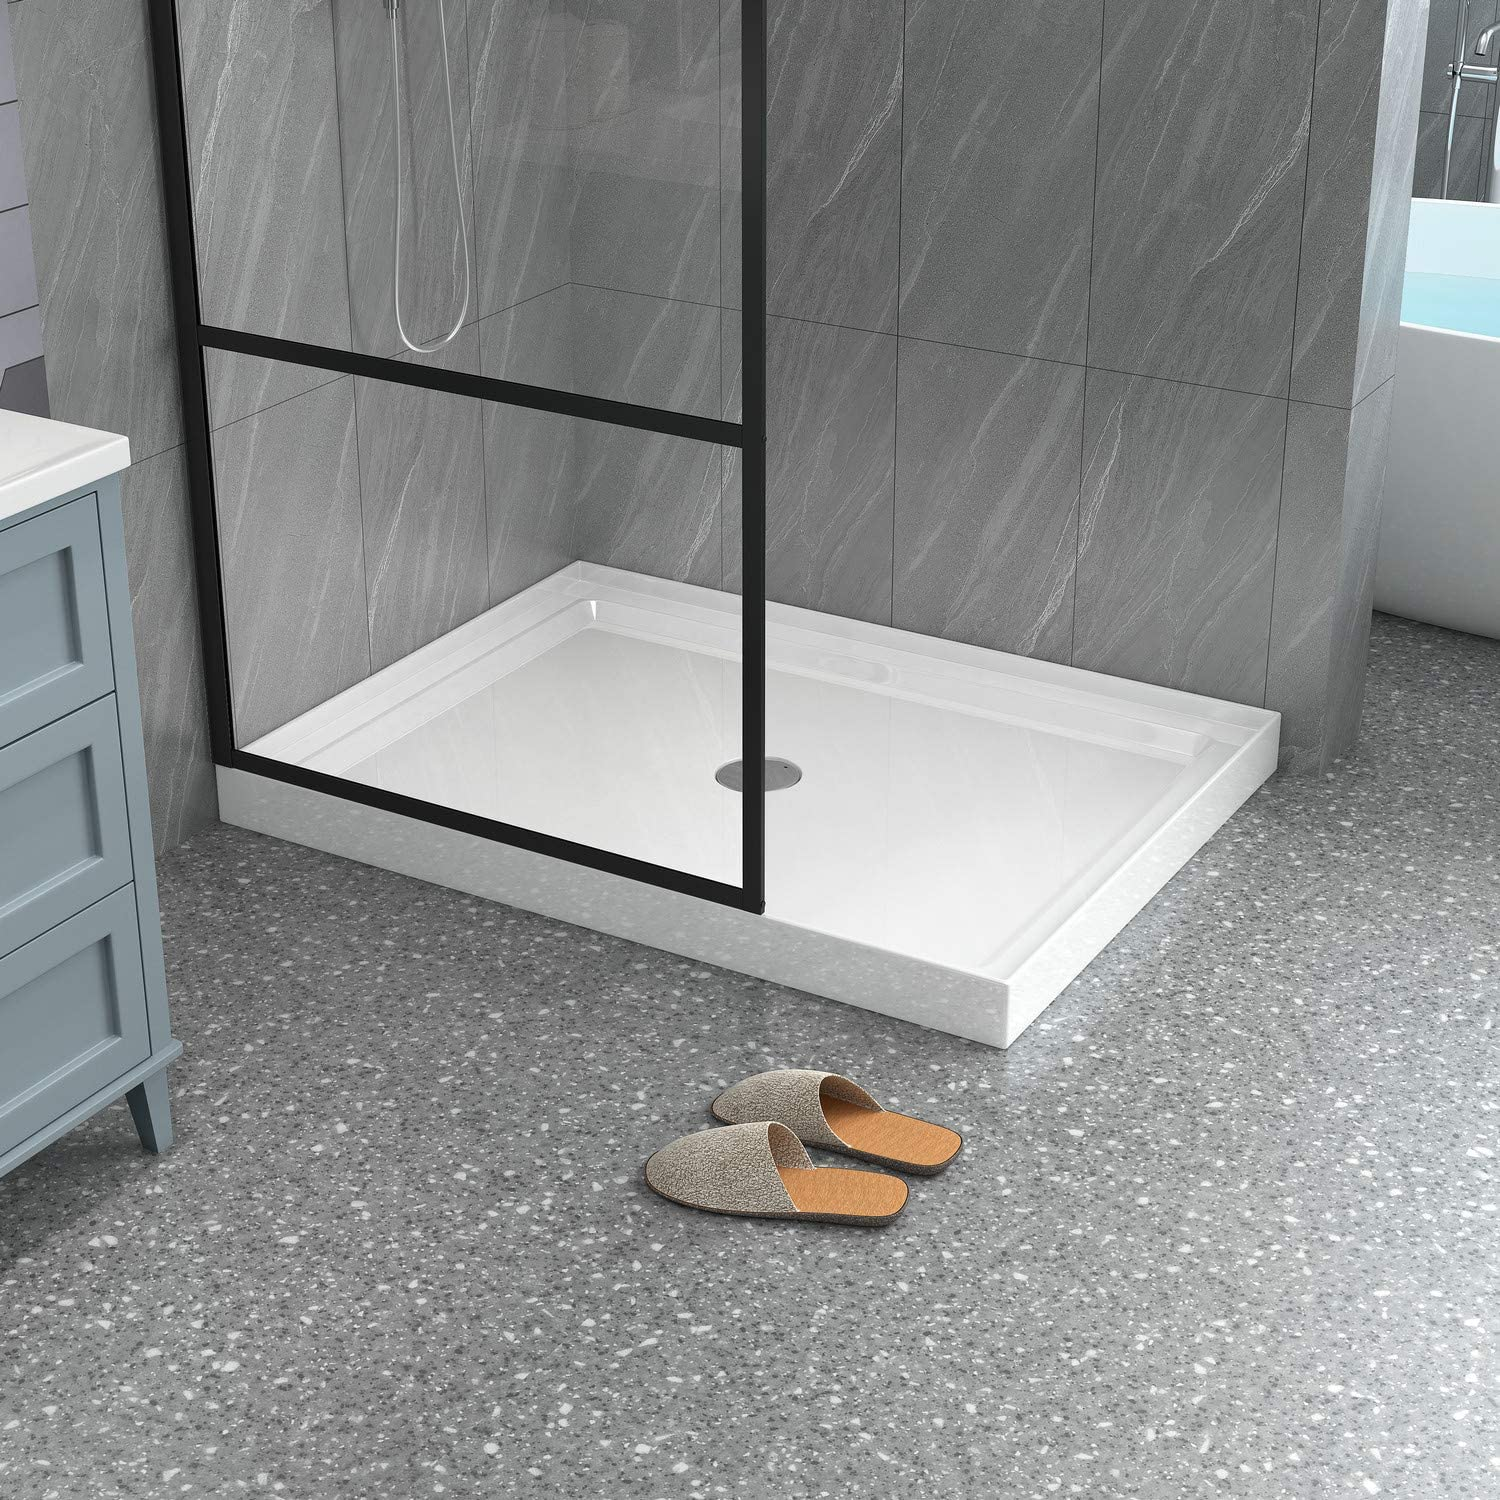 Goodyo Shower Pan in White Max 45% OFF 36 48 Height Base 3.5